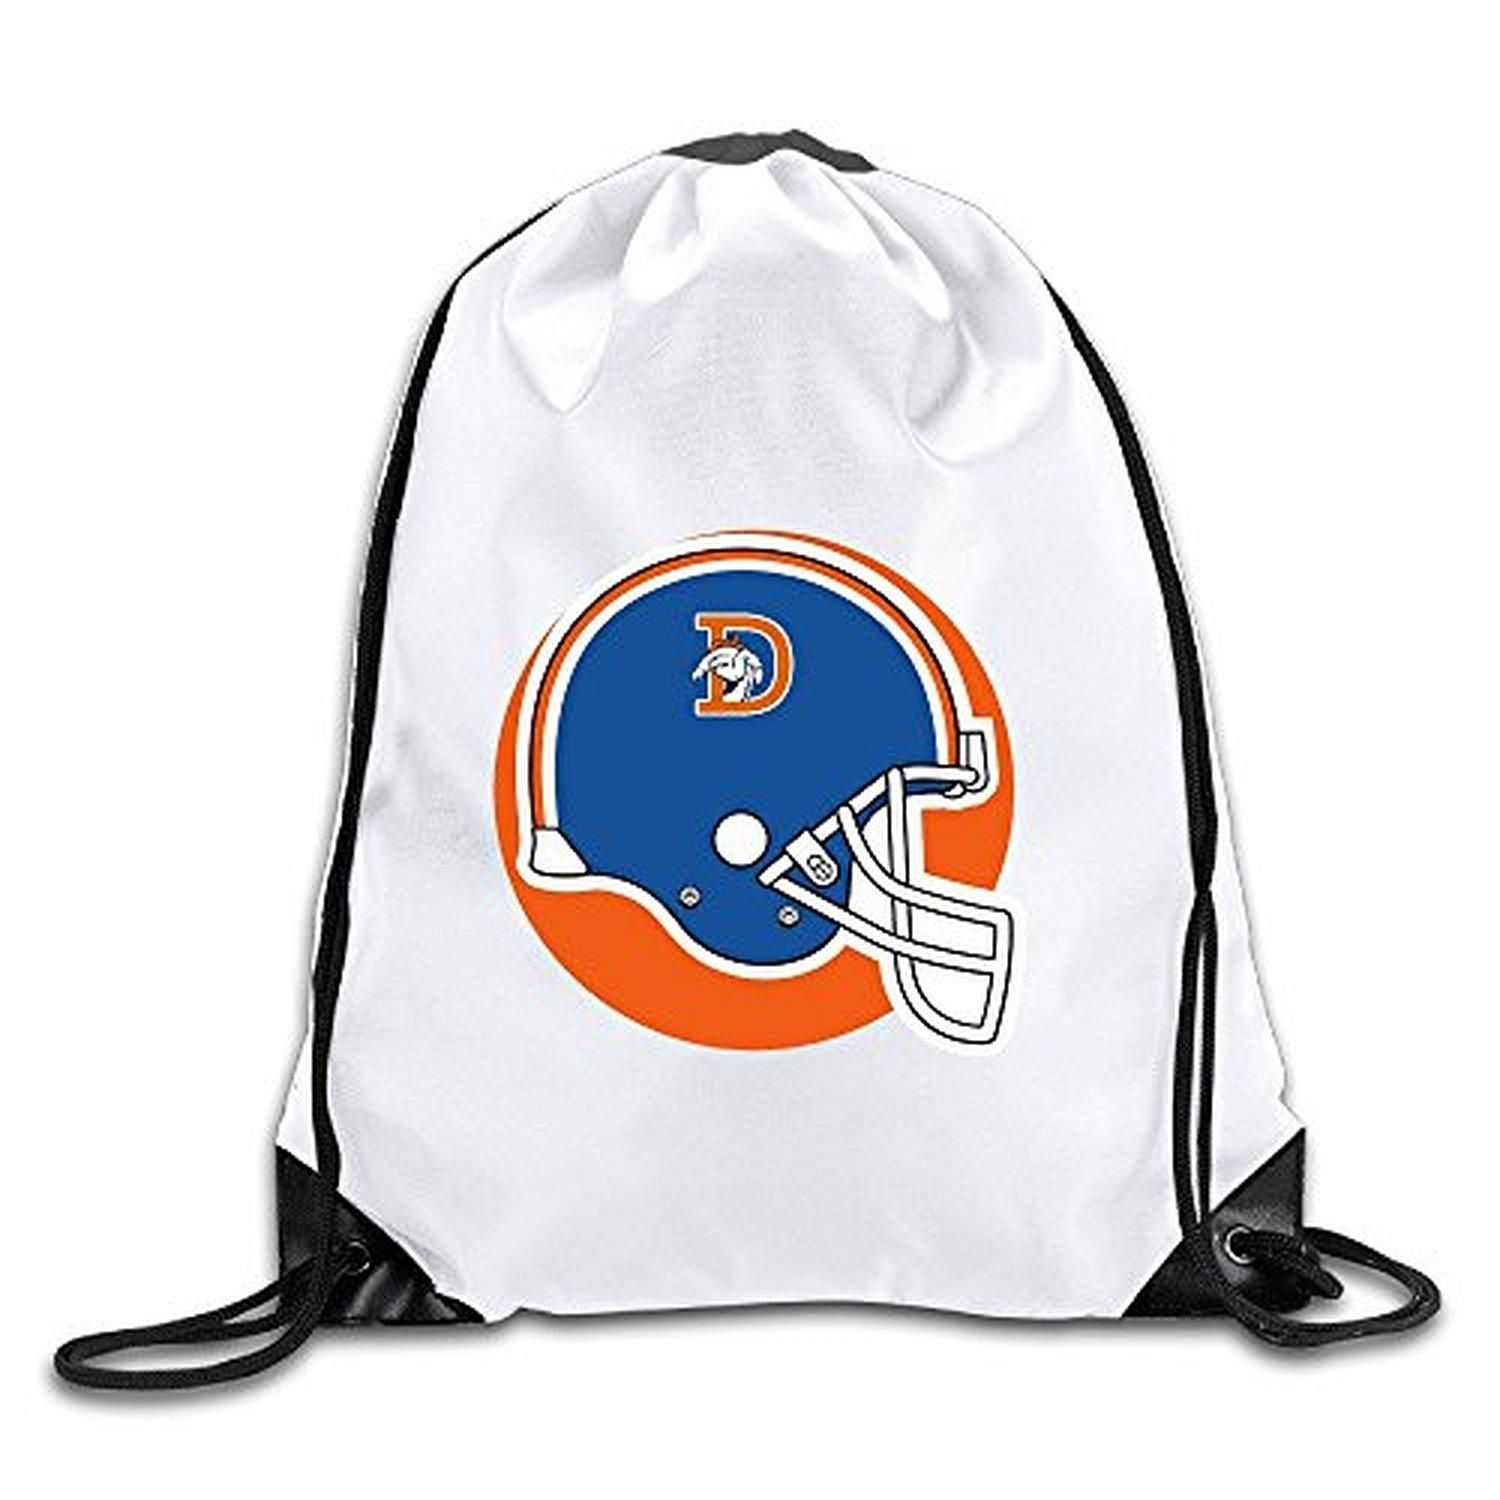 0fbdd8be219 Good Gift - Fashion American Football Team Sport Bag Drawstring Sling  Backpack For Men   Women Sackpack - Brought to you by Avarsha.com